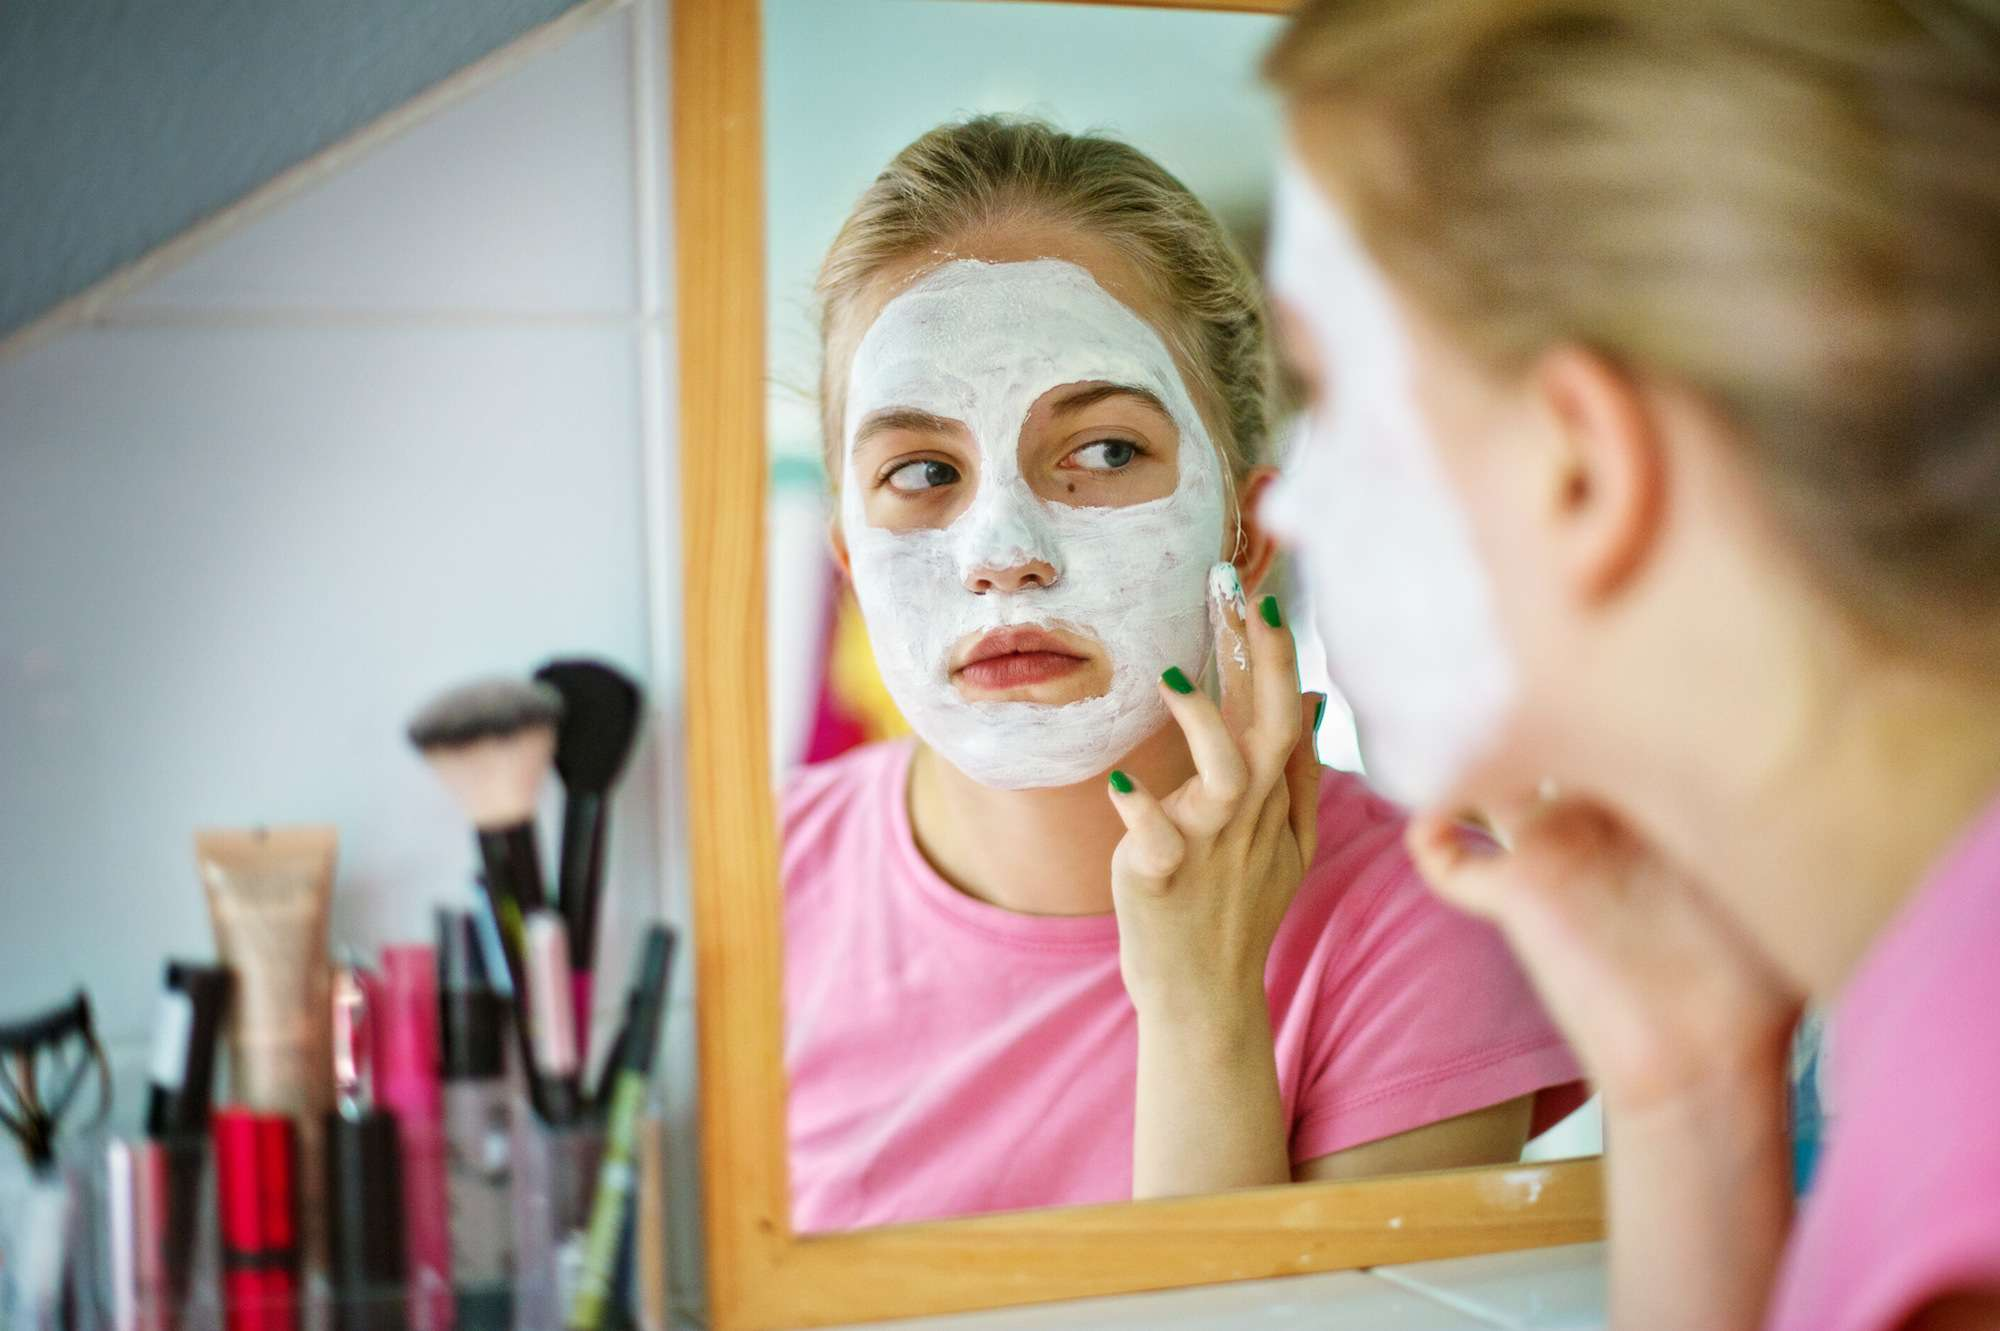 how to make pimples go away overnight naturally